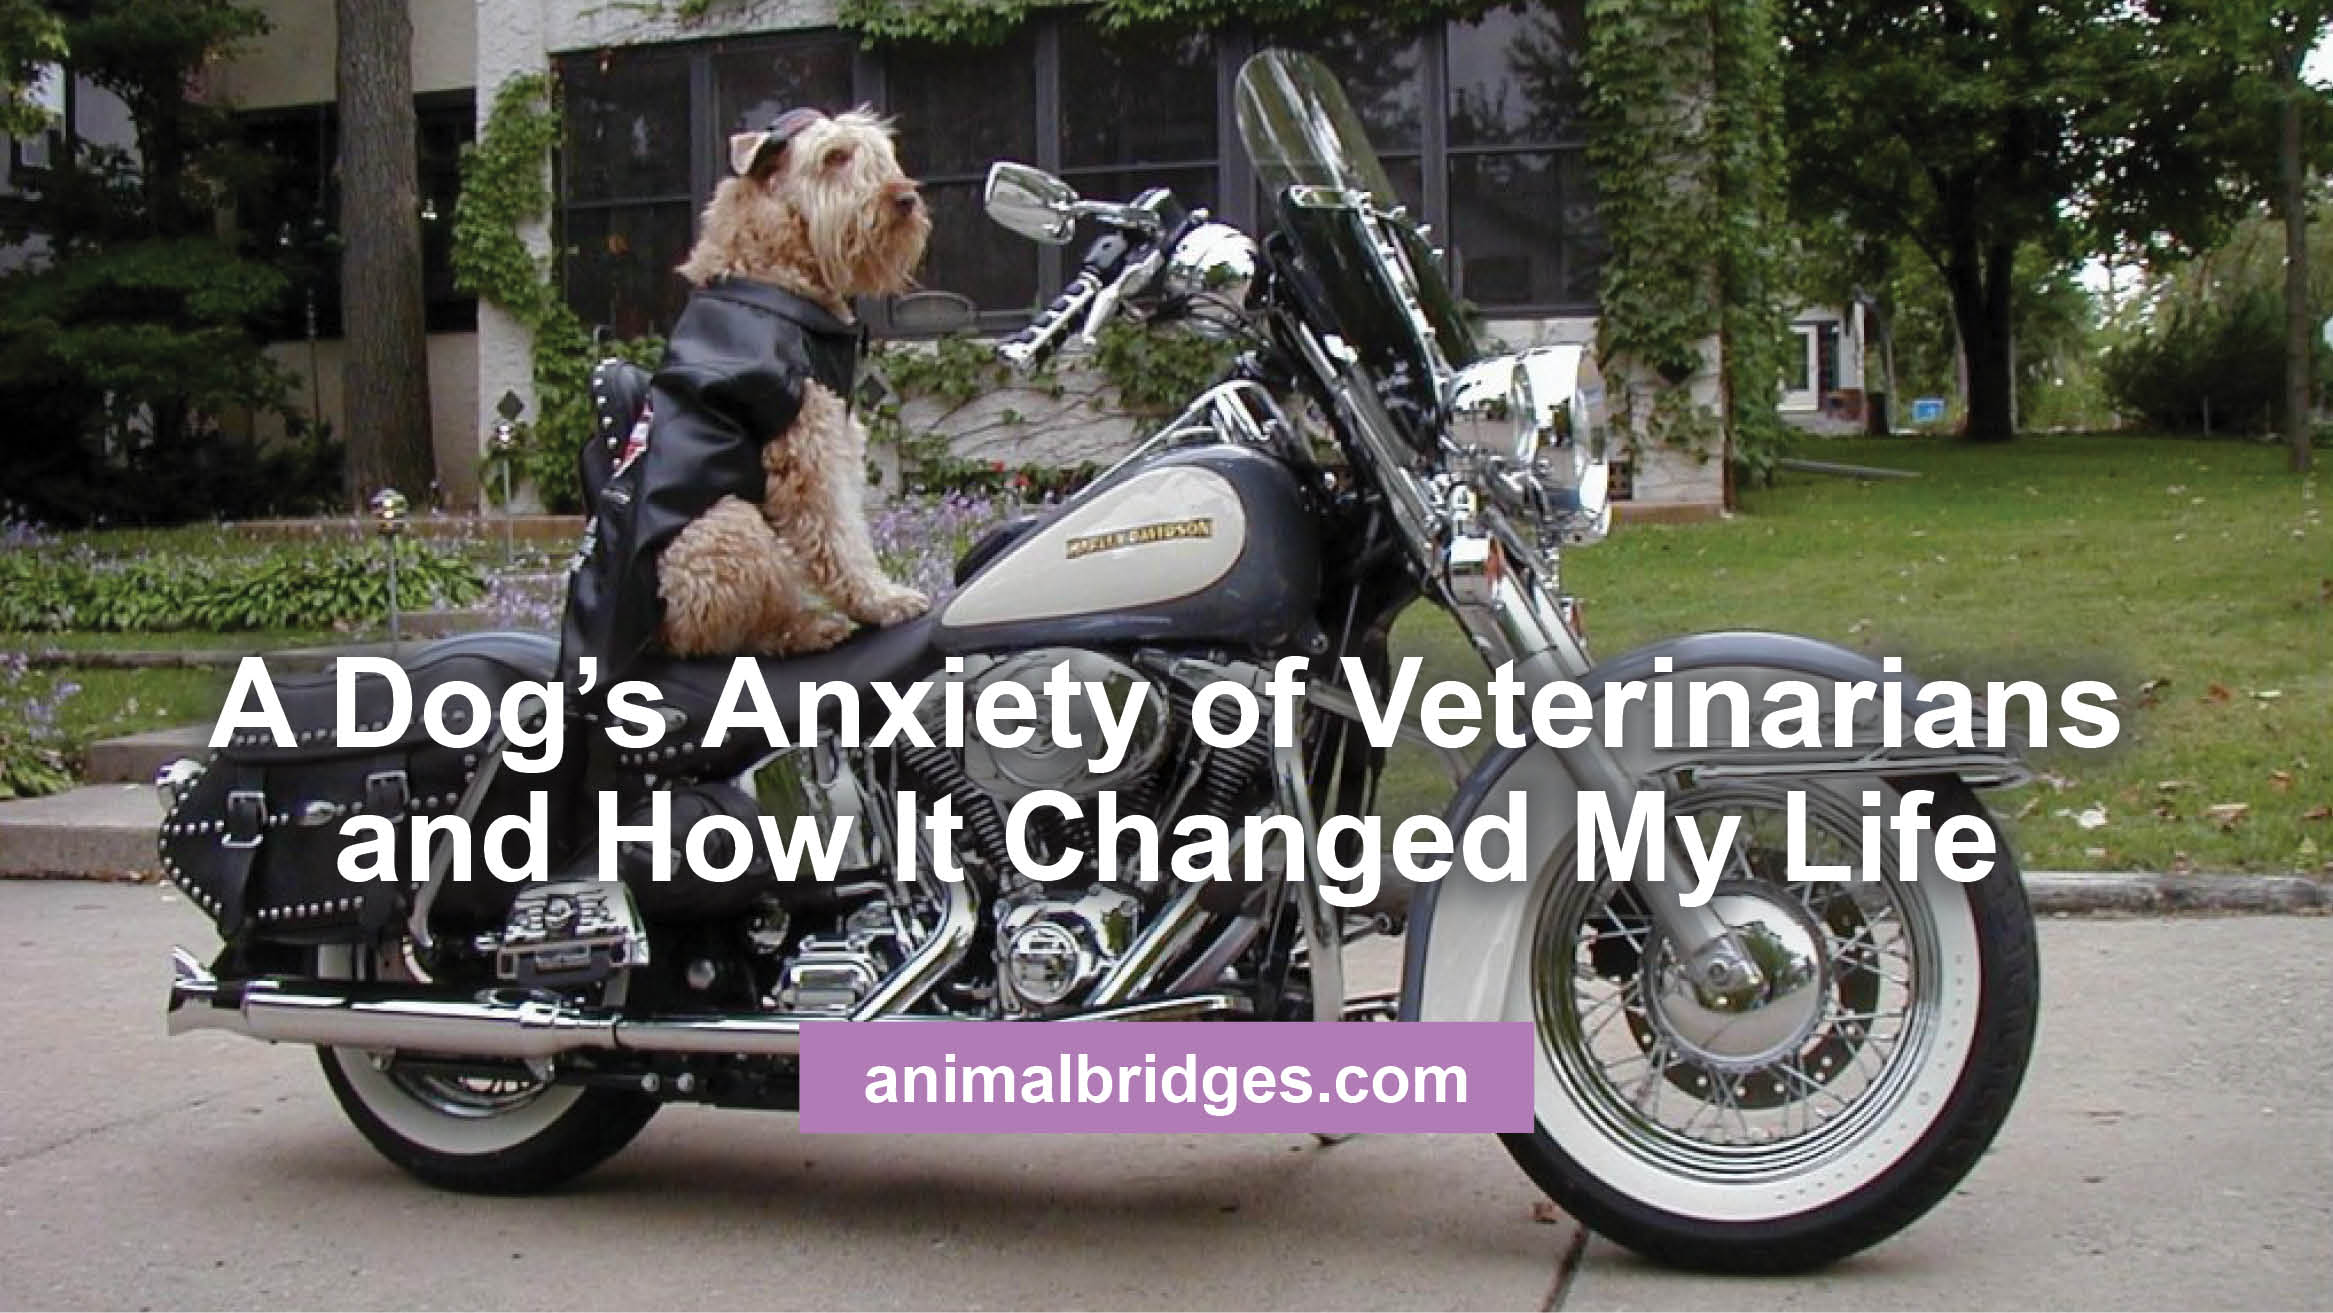 A Dog's Anxiety of Veterinarians and How It Changed My Life